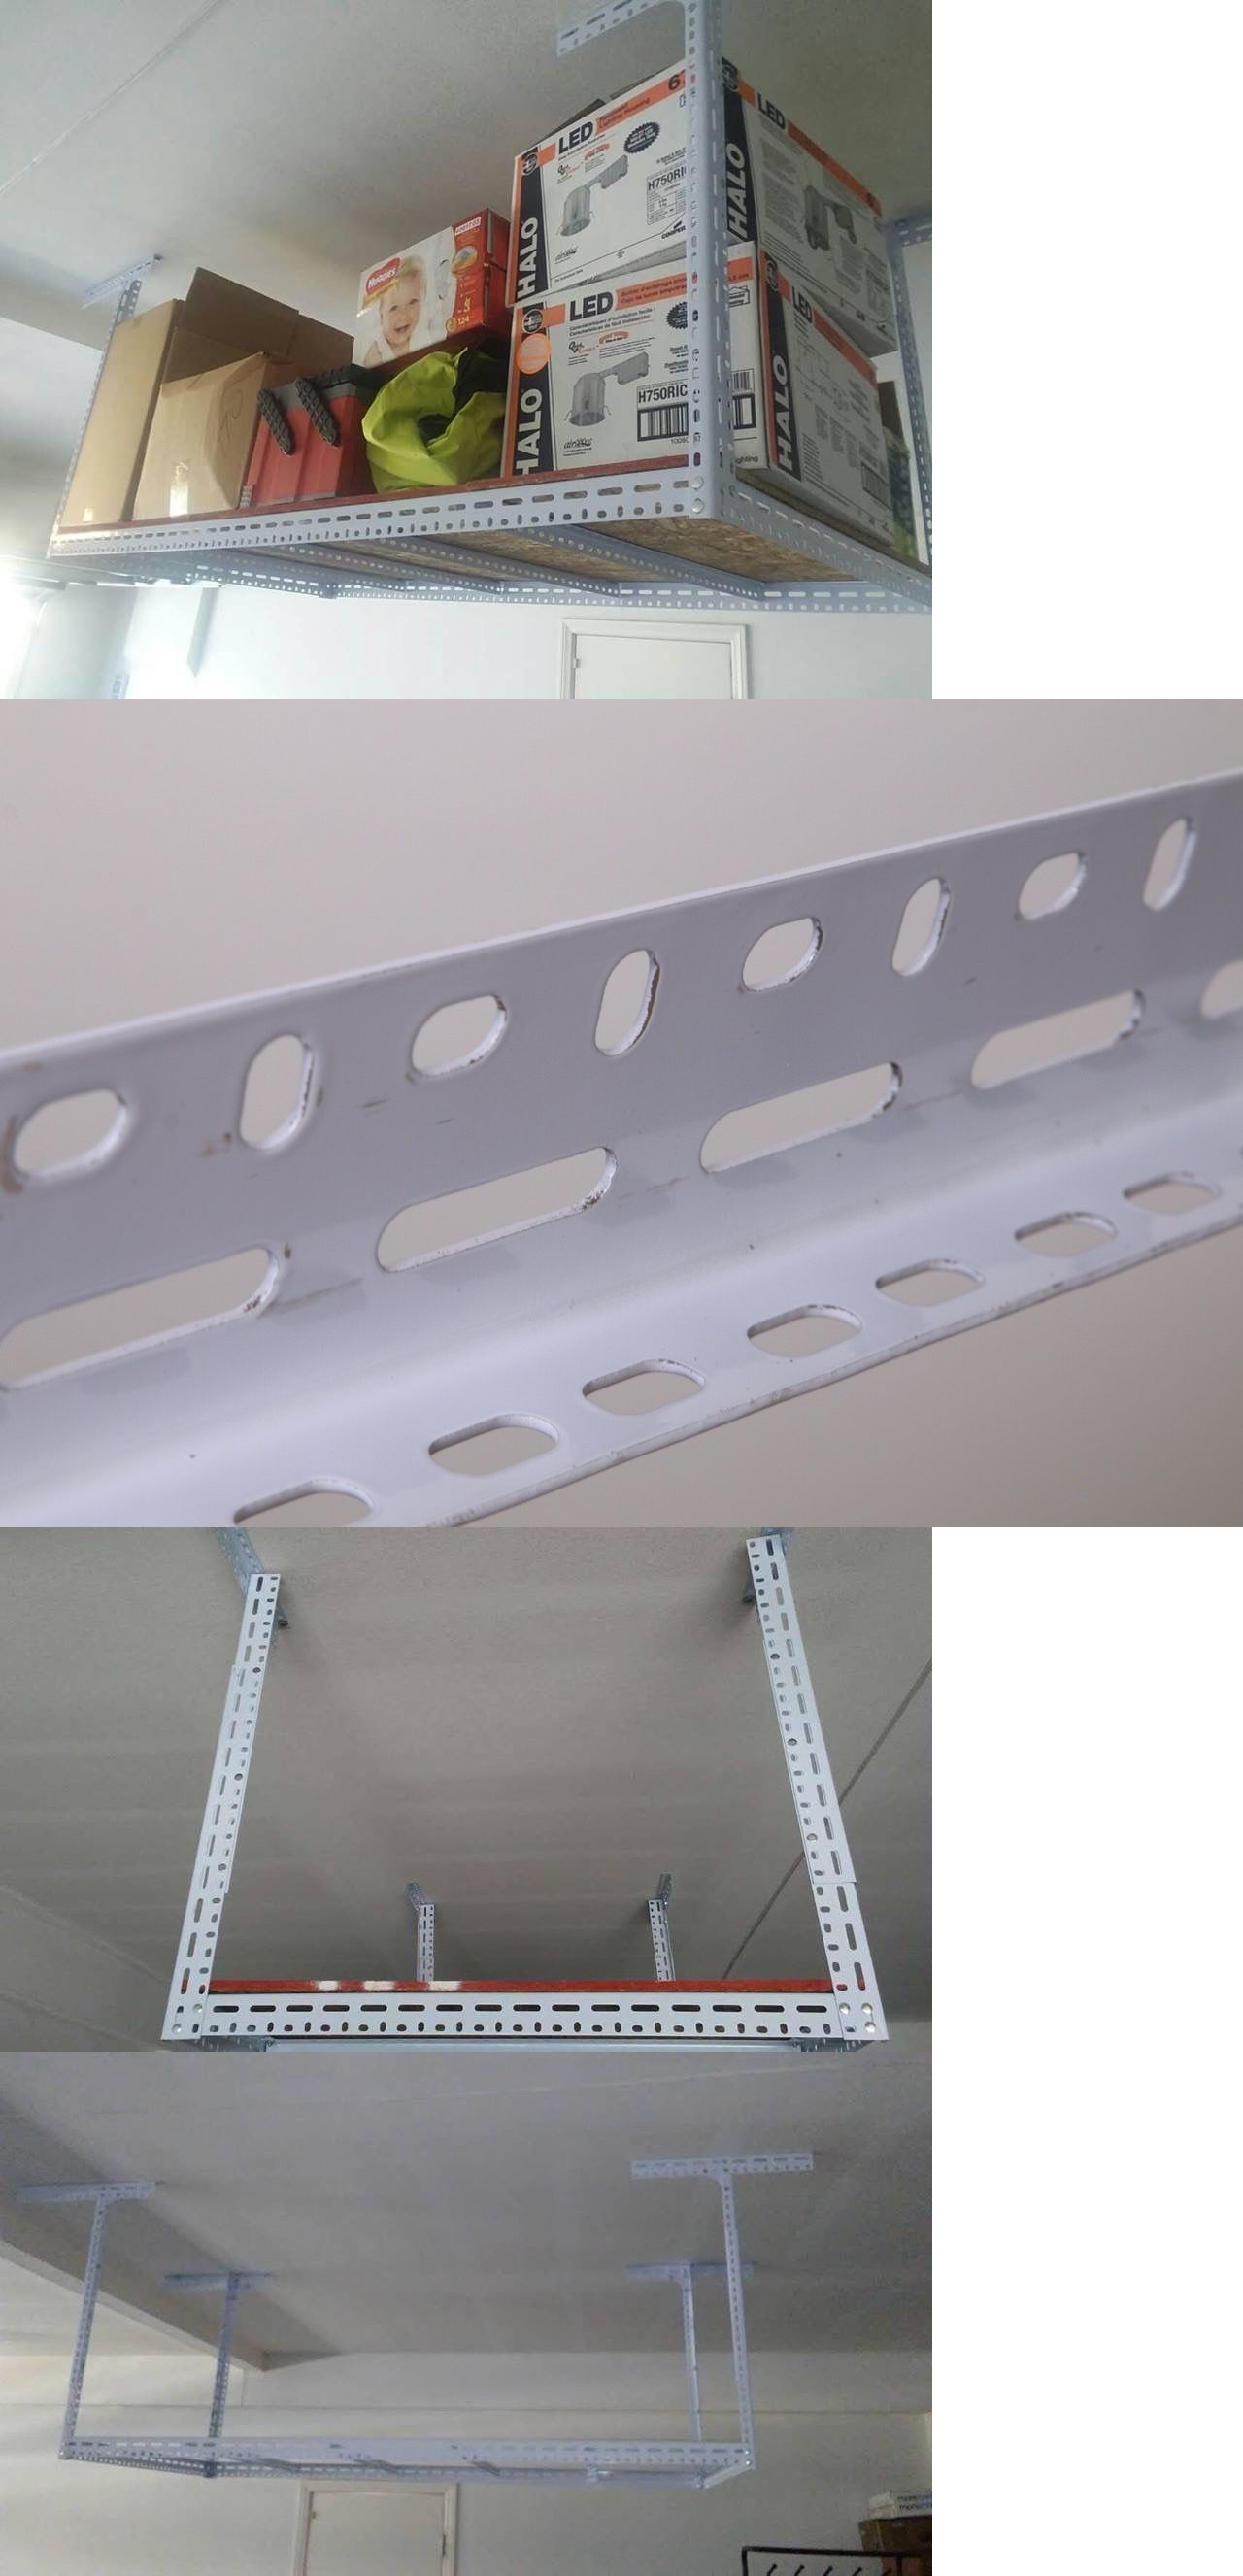 Other Home Organization 20621: 48 W X 96 L Big Overhead Storage Rack Garage Ceiling  Mount